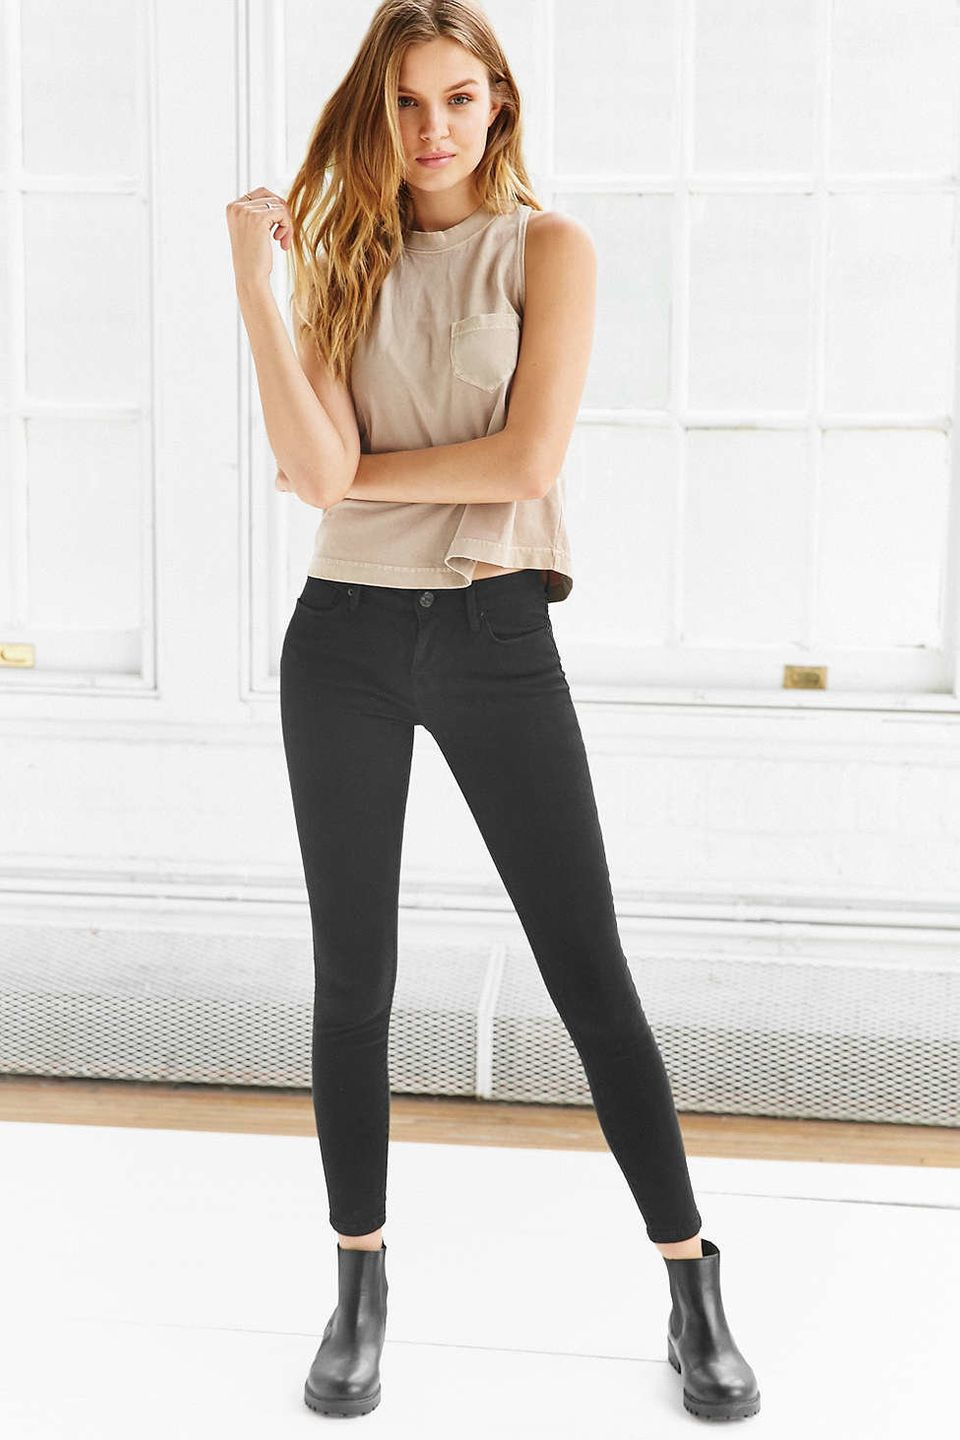 The Best Skinny Jeans That Are Flattering On ALL Body